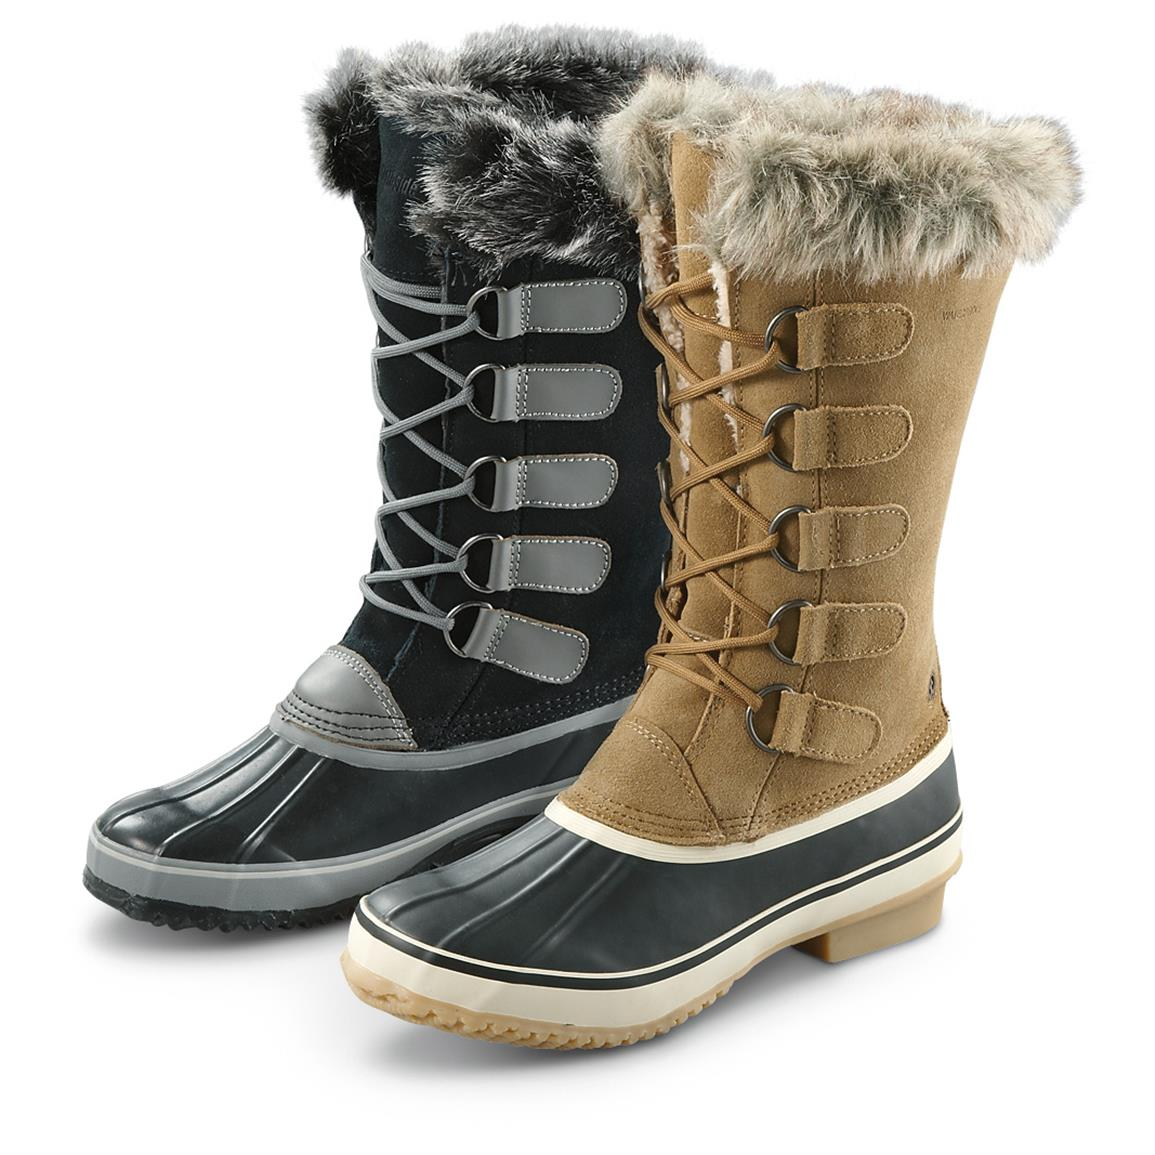 Waterproof Snow Boots Women fjxcefUG